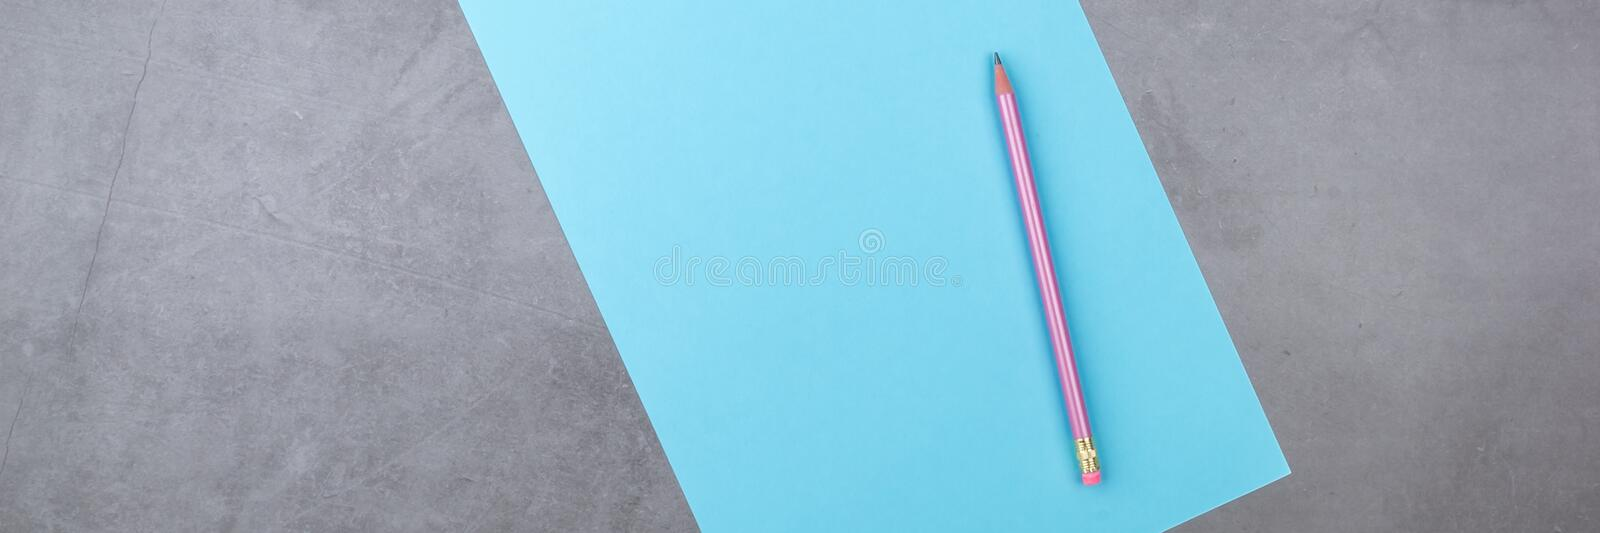 Flat lay, top view, blue sheet and pencil on a gray textured background royalty free stock image